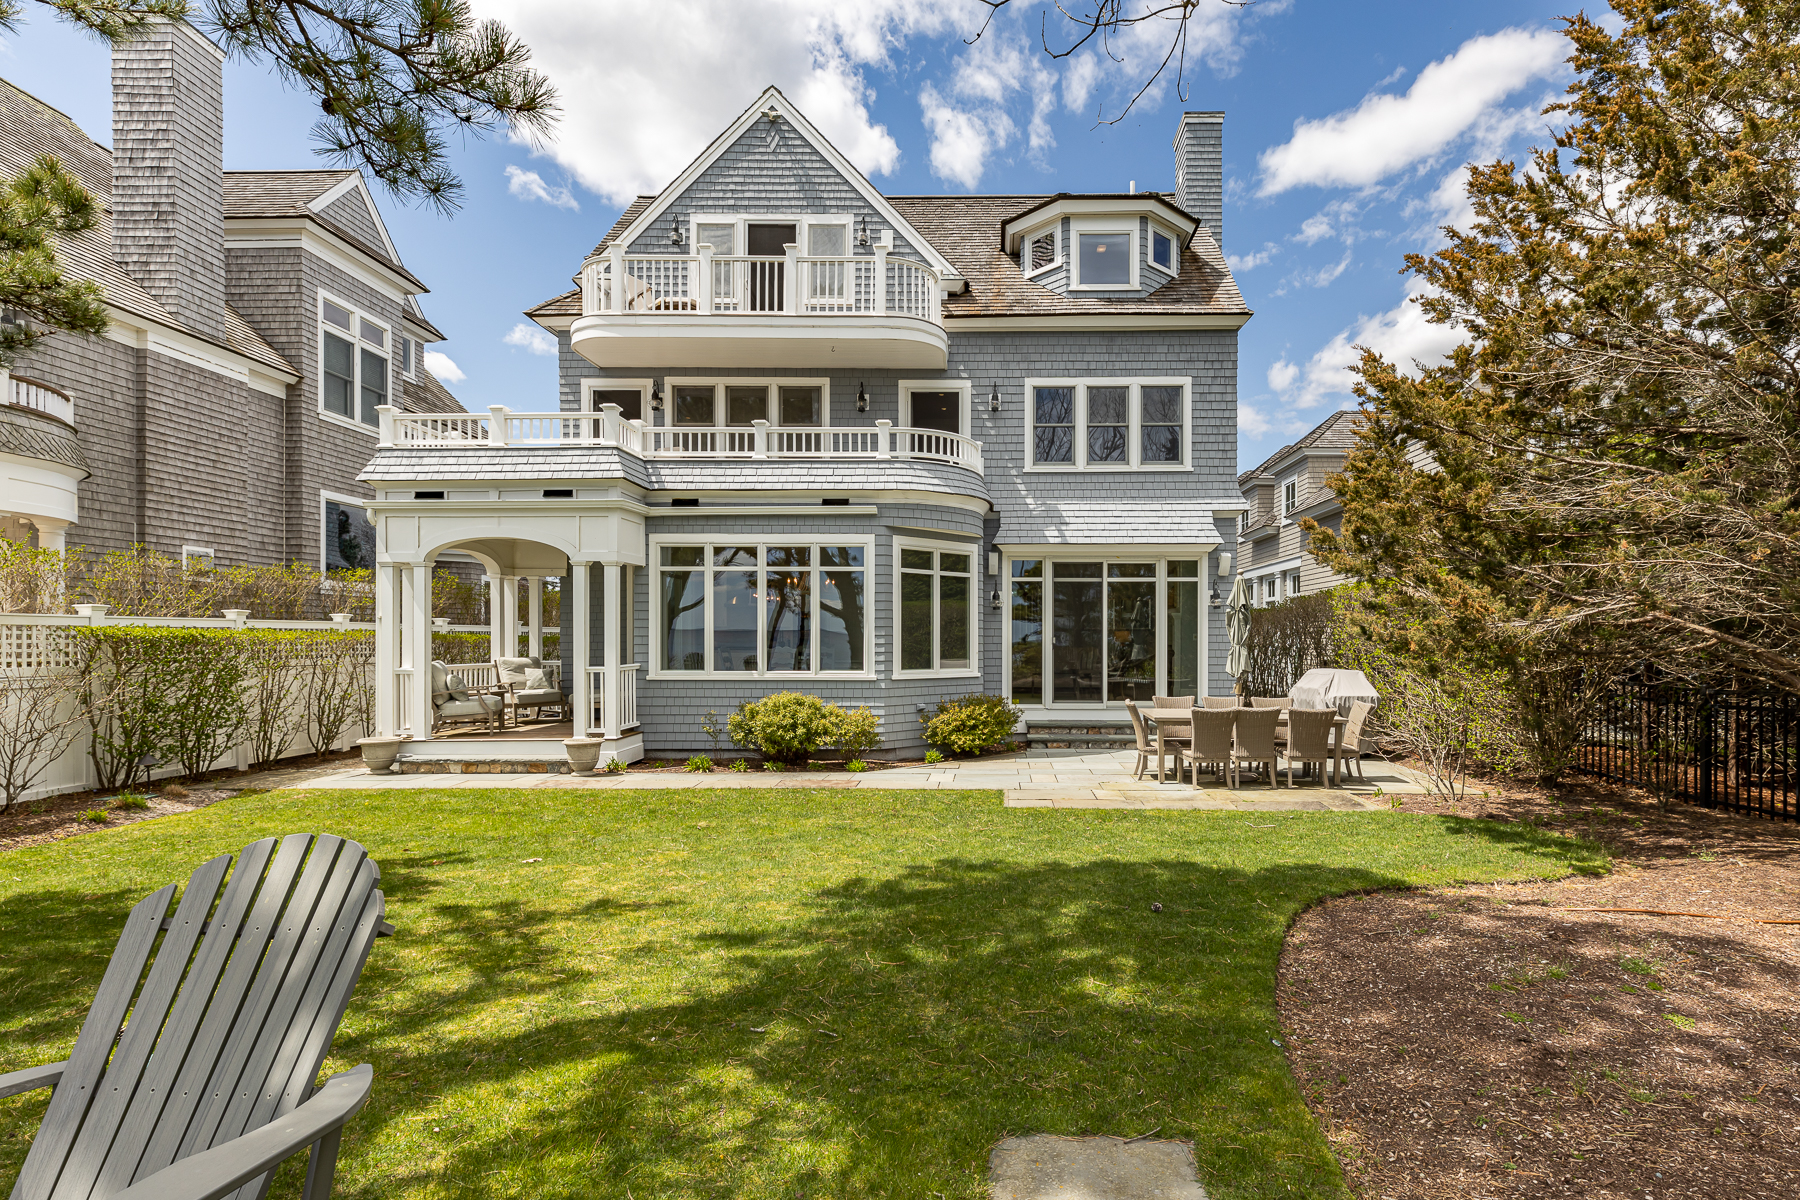 Single Family Homes for Active at EXQUISITE BEACH FRONT 23 Ocean Bluff Drive New Seabury, Massachusetts 02649 United States